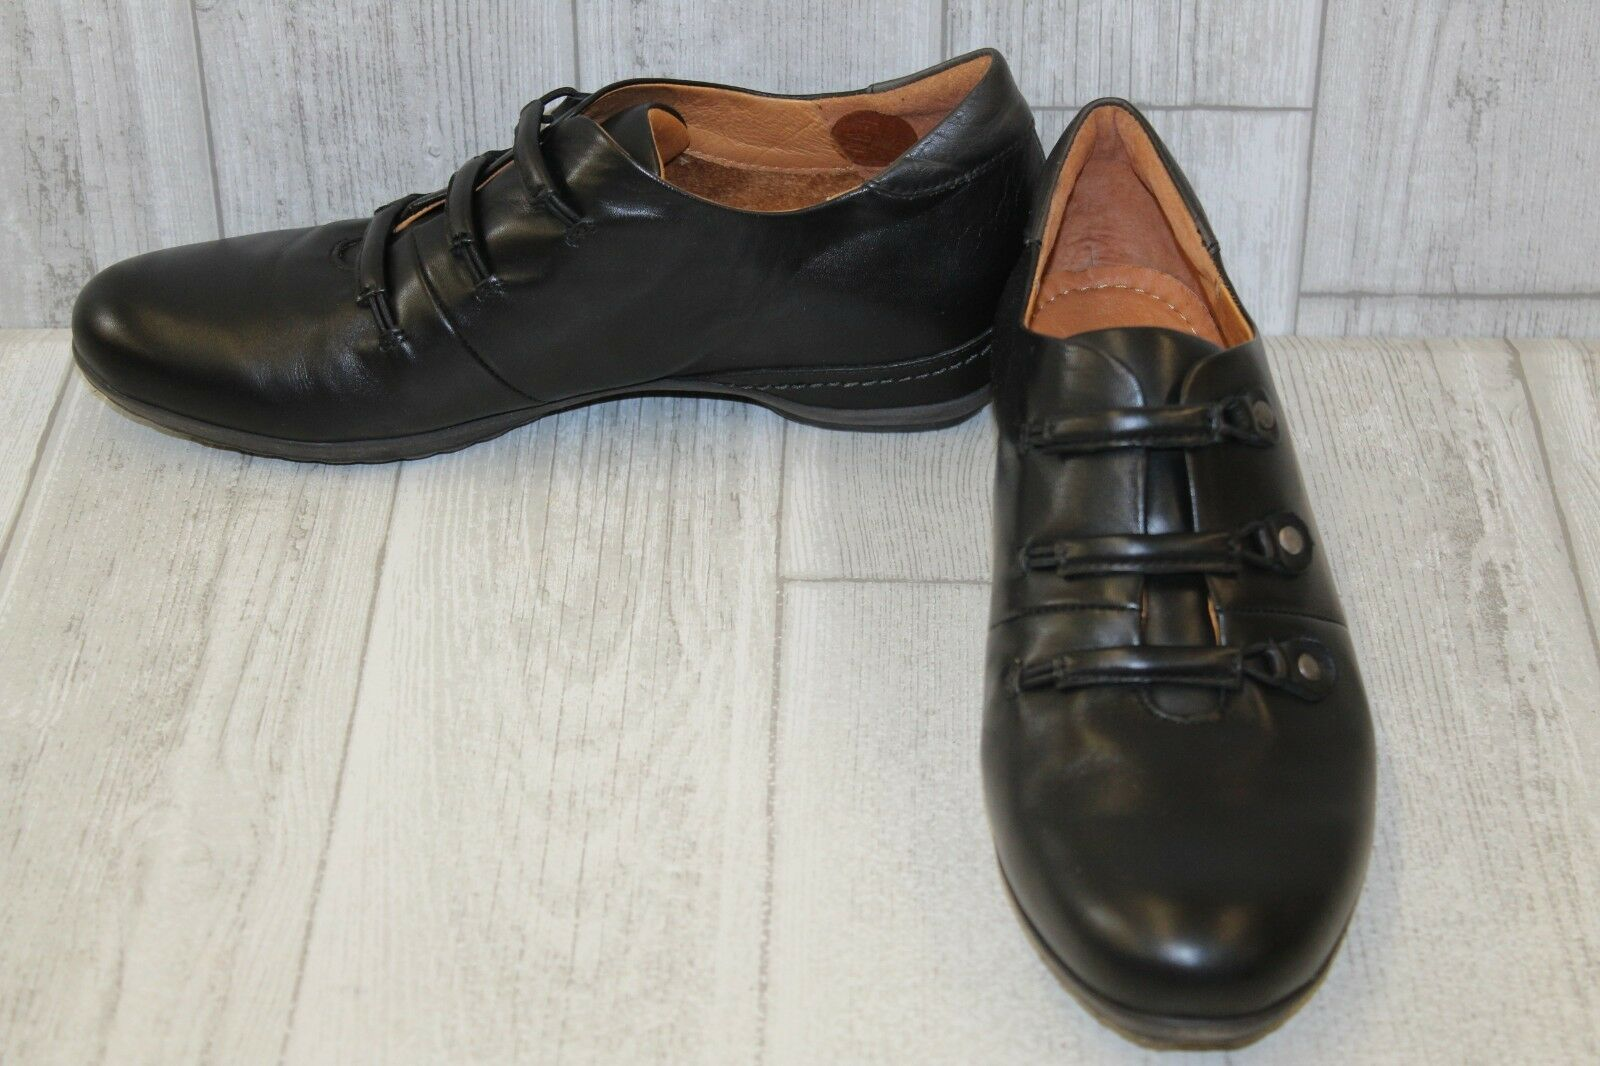 Pikolinos Venezia Oxford - Women's Size 10.5-11, Black